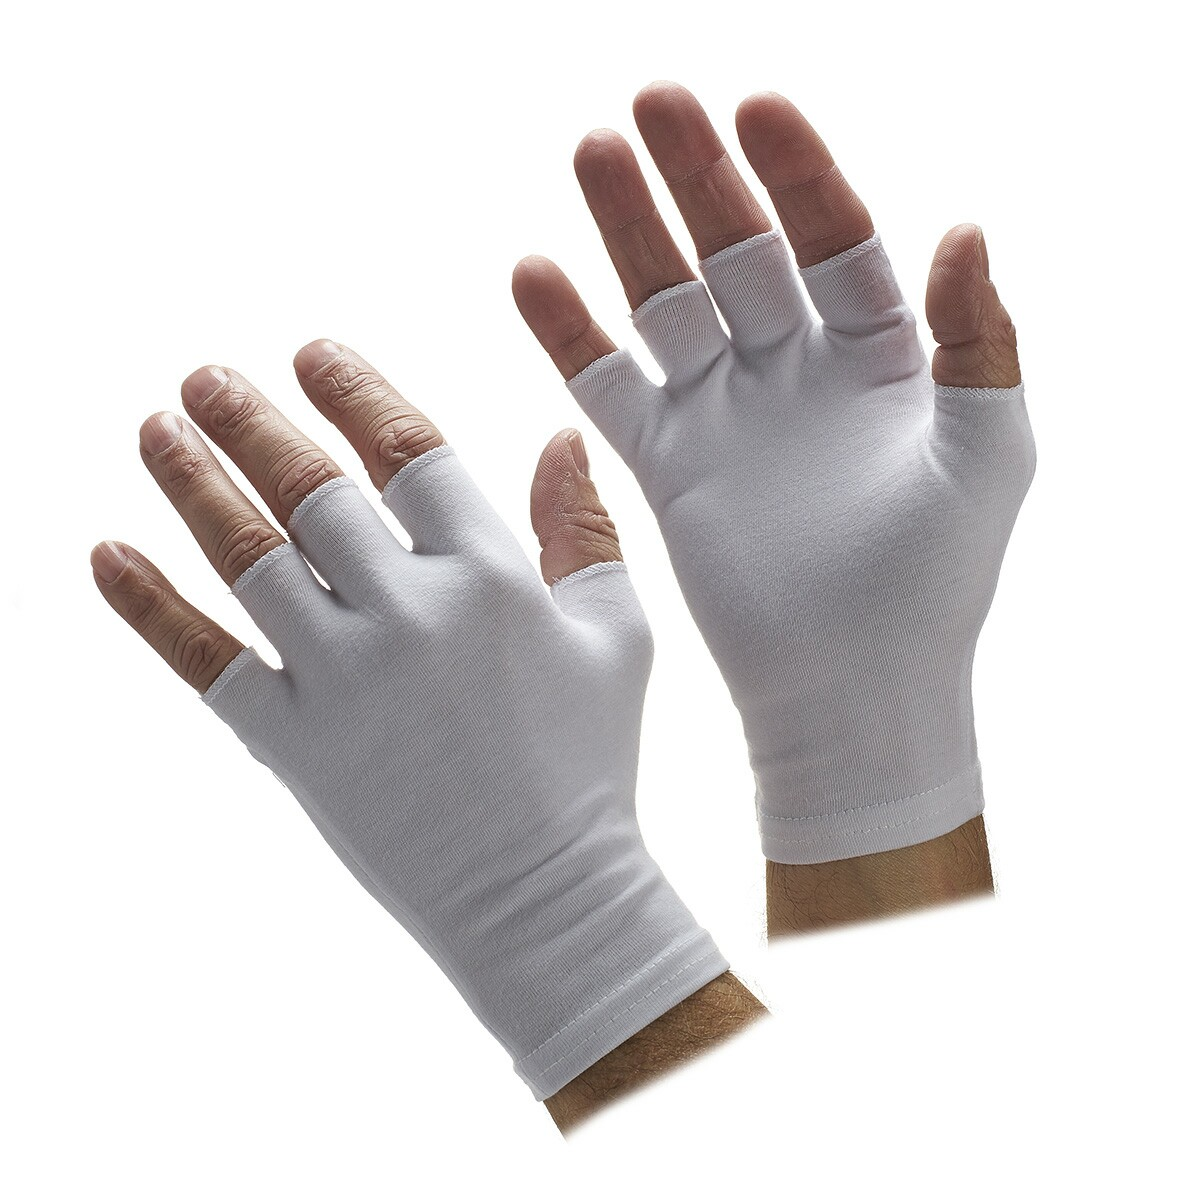 Gloves With Fingertips Out: Half-Finger White Spandex Gloves